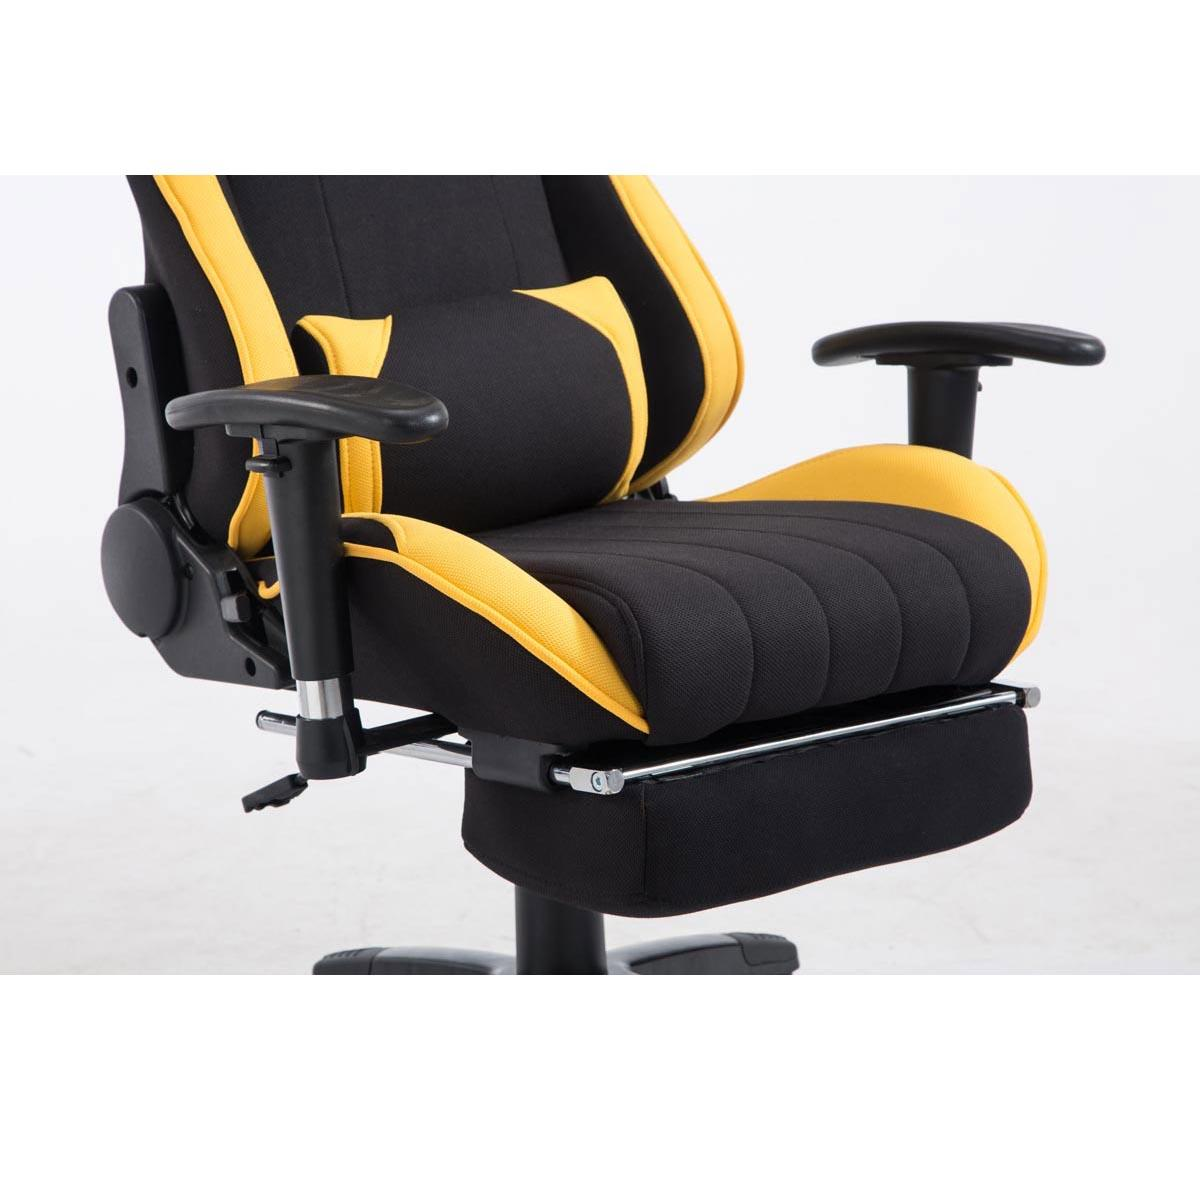 fauteuil gamer turbo tissu avec reposepieds inclinable